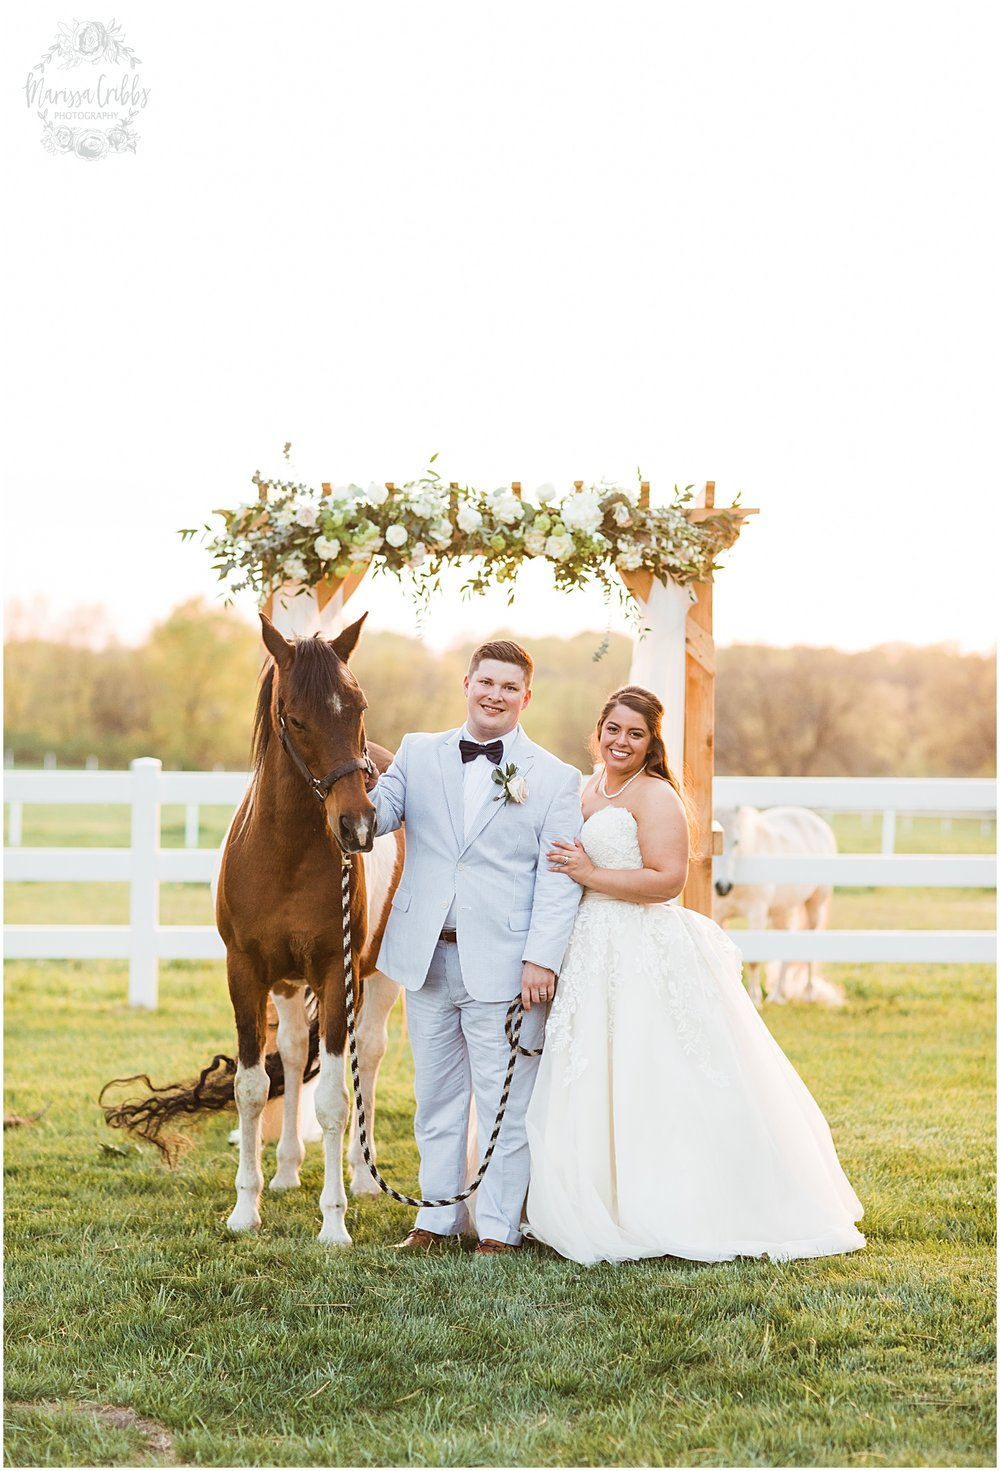 ANDREA & MICHAEL WEDDING | HICKORY CREEK RANCH | MARISSA CRIBBS PHOTOGRAPHY_4918.jpg